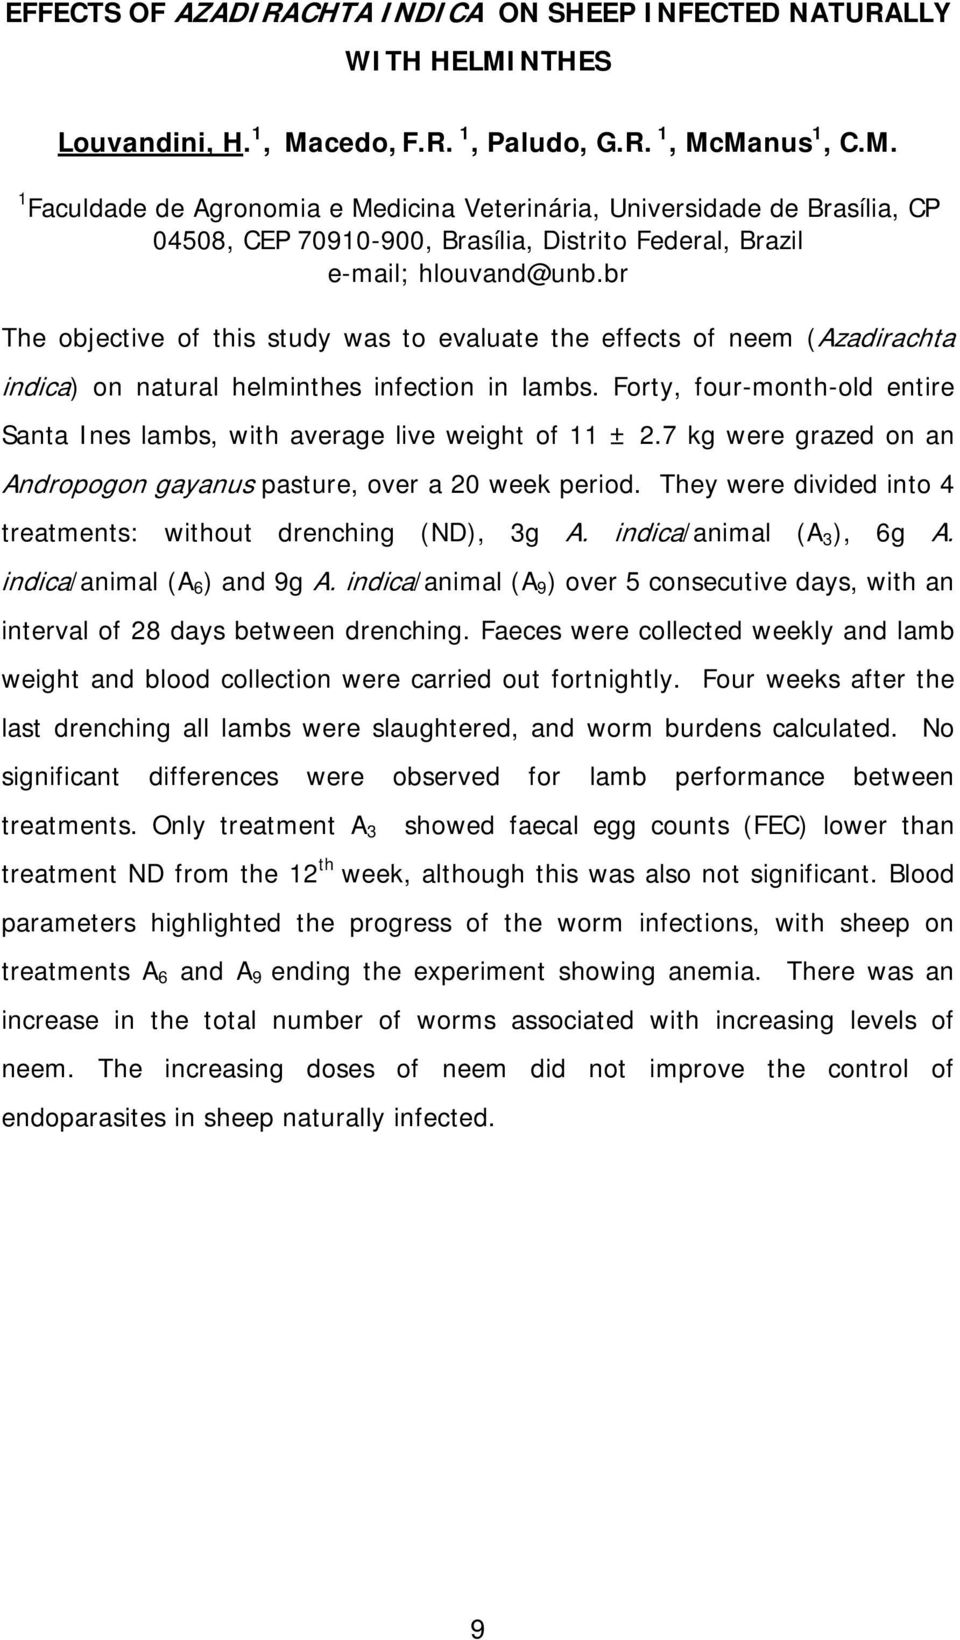 br The objective of this study was to evaluate the effects of neem (Azadirachta indica) on natural helminthes infection in lambs.